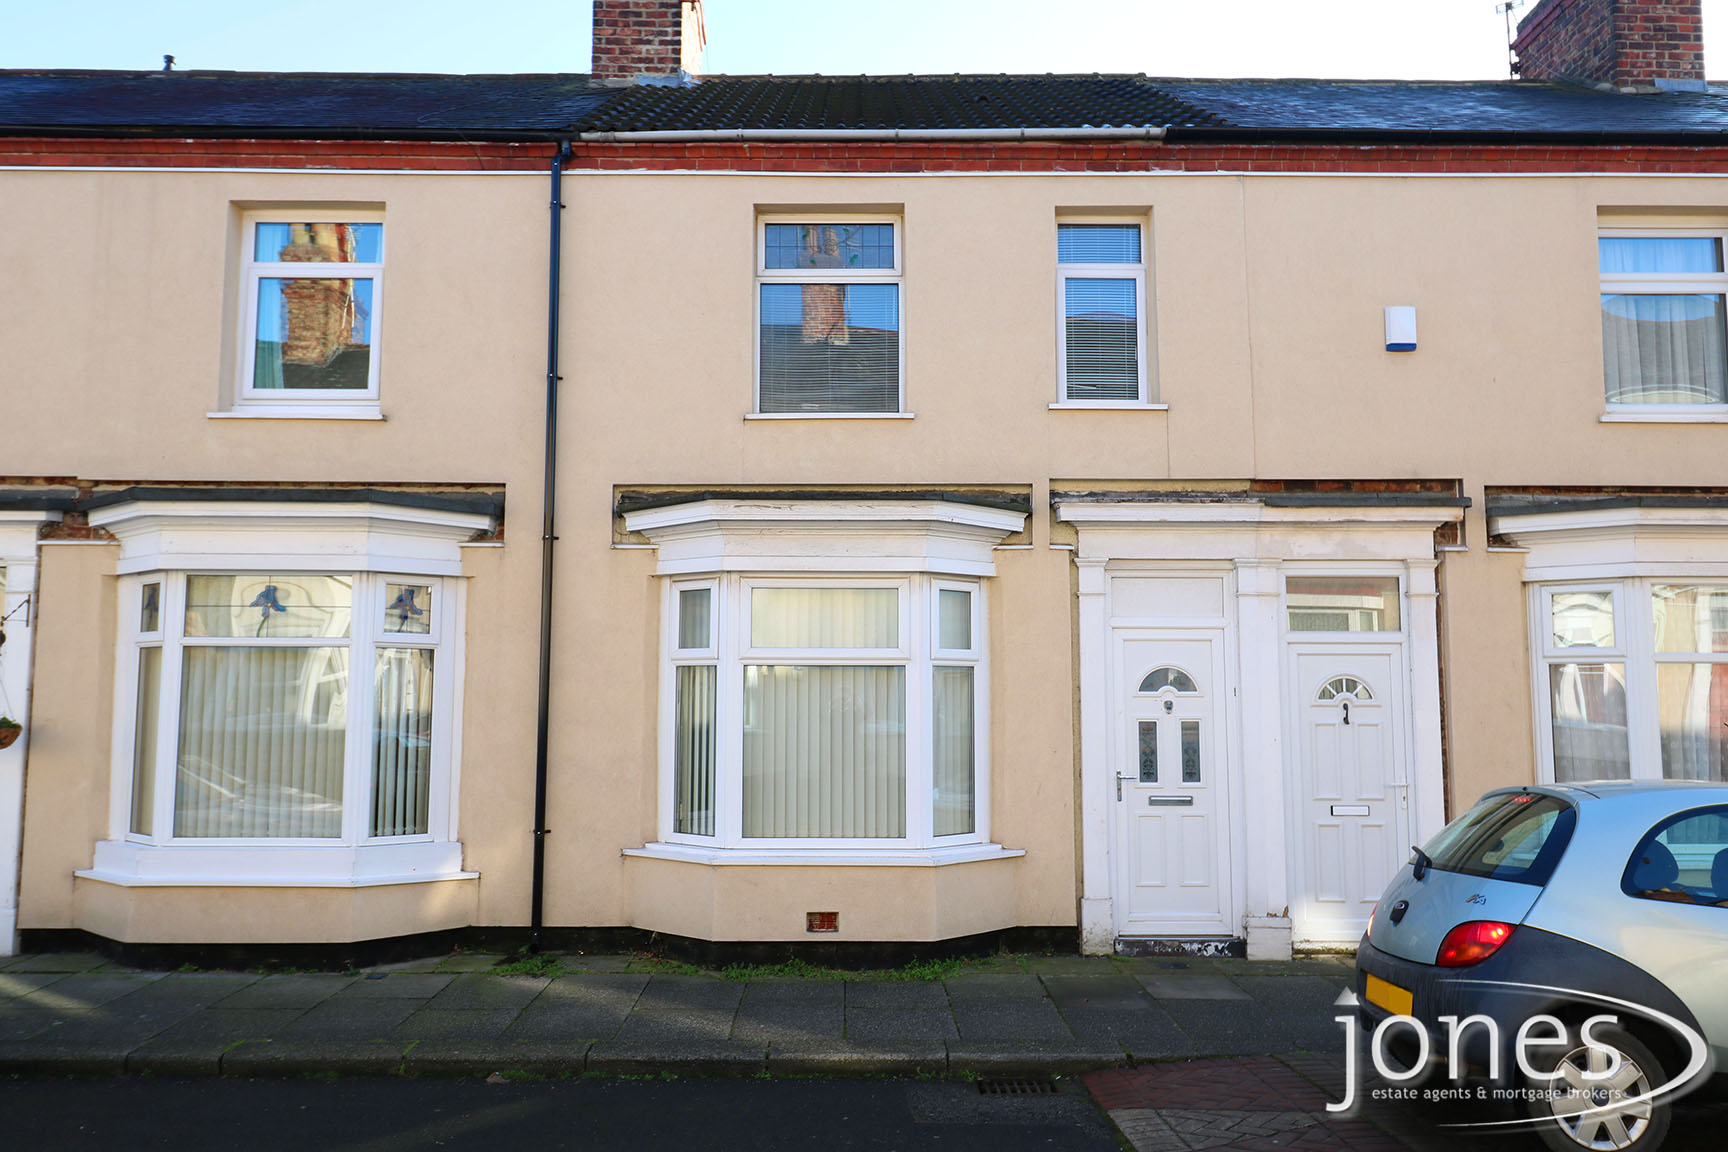 Home for Sale Let - Photo 01 Castlereagh Road,  Stockton on Tees, TS19 0DL